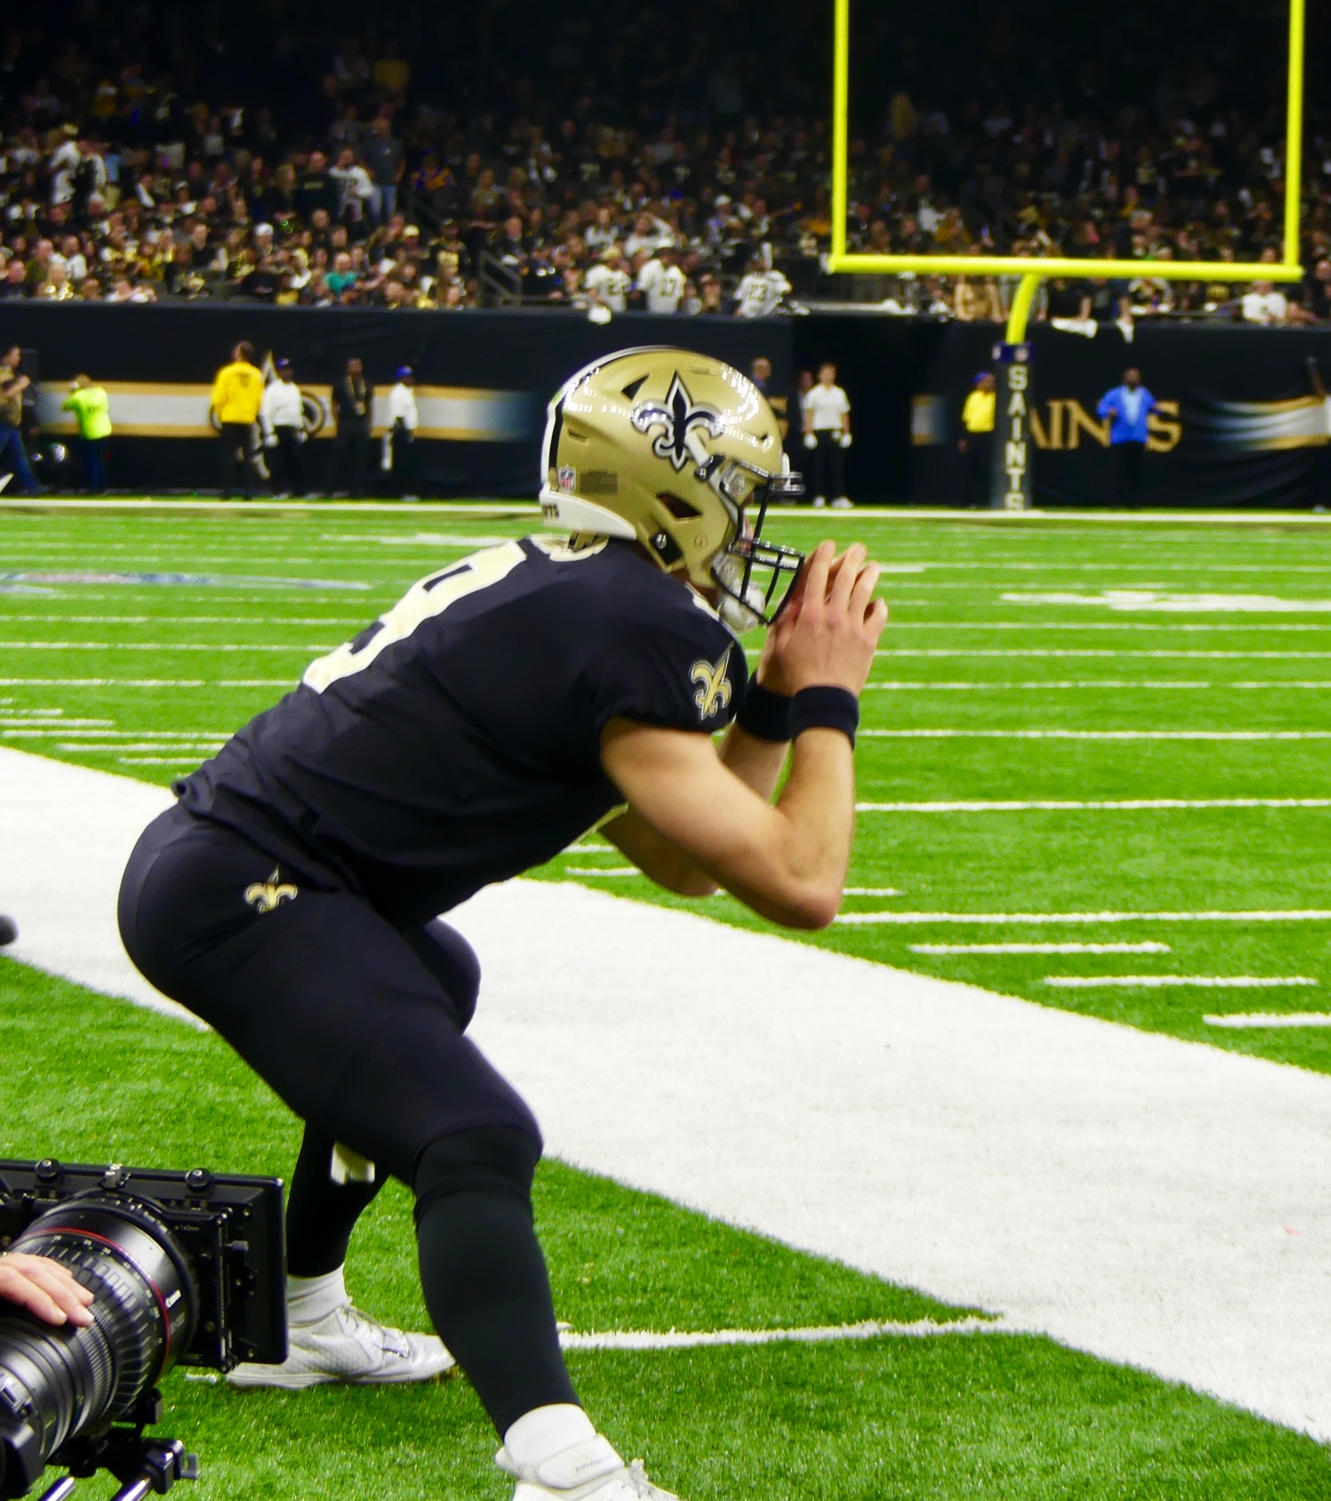 Quarterback+Drew+Brees+%289%29+stretches+before+the+NFC+Championship+game.+Photo+credit%3A+Olivia+Ledet